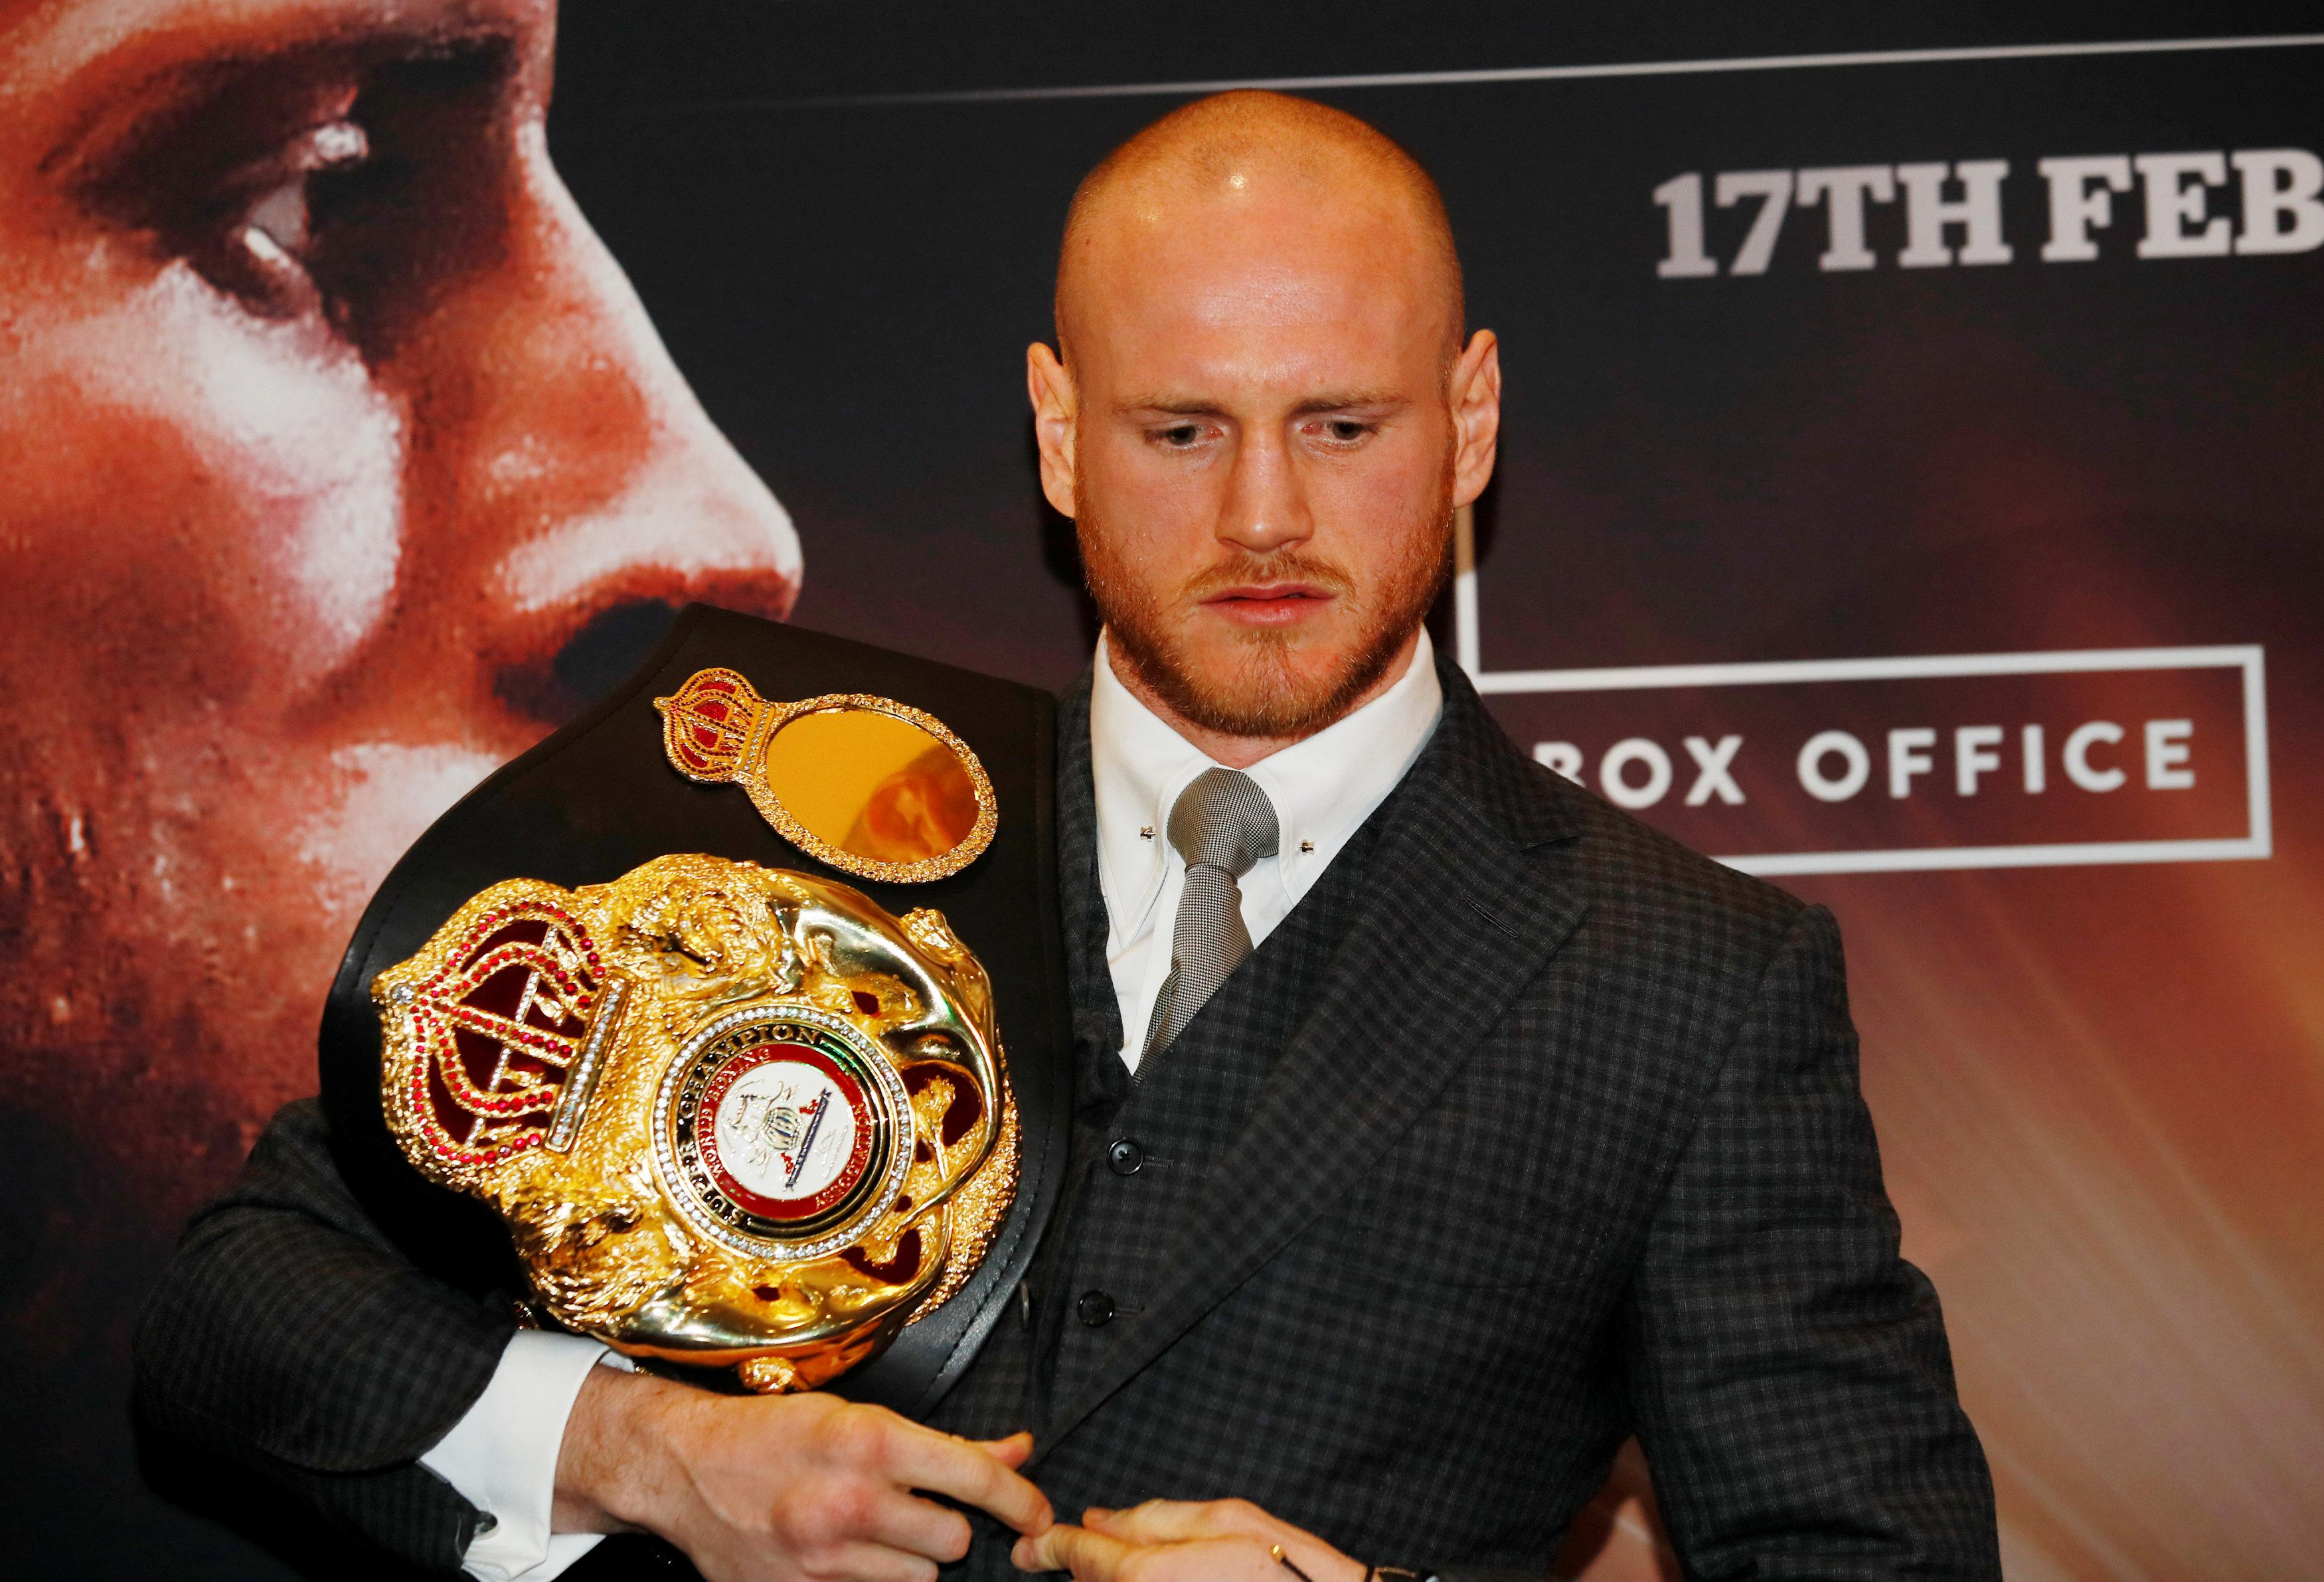 Londoner George Groves is the underdog as he bids to keep hold of his world title against Chris Eubank Jr at the Manchester Arena this weekend